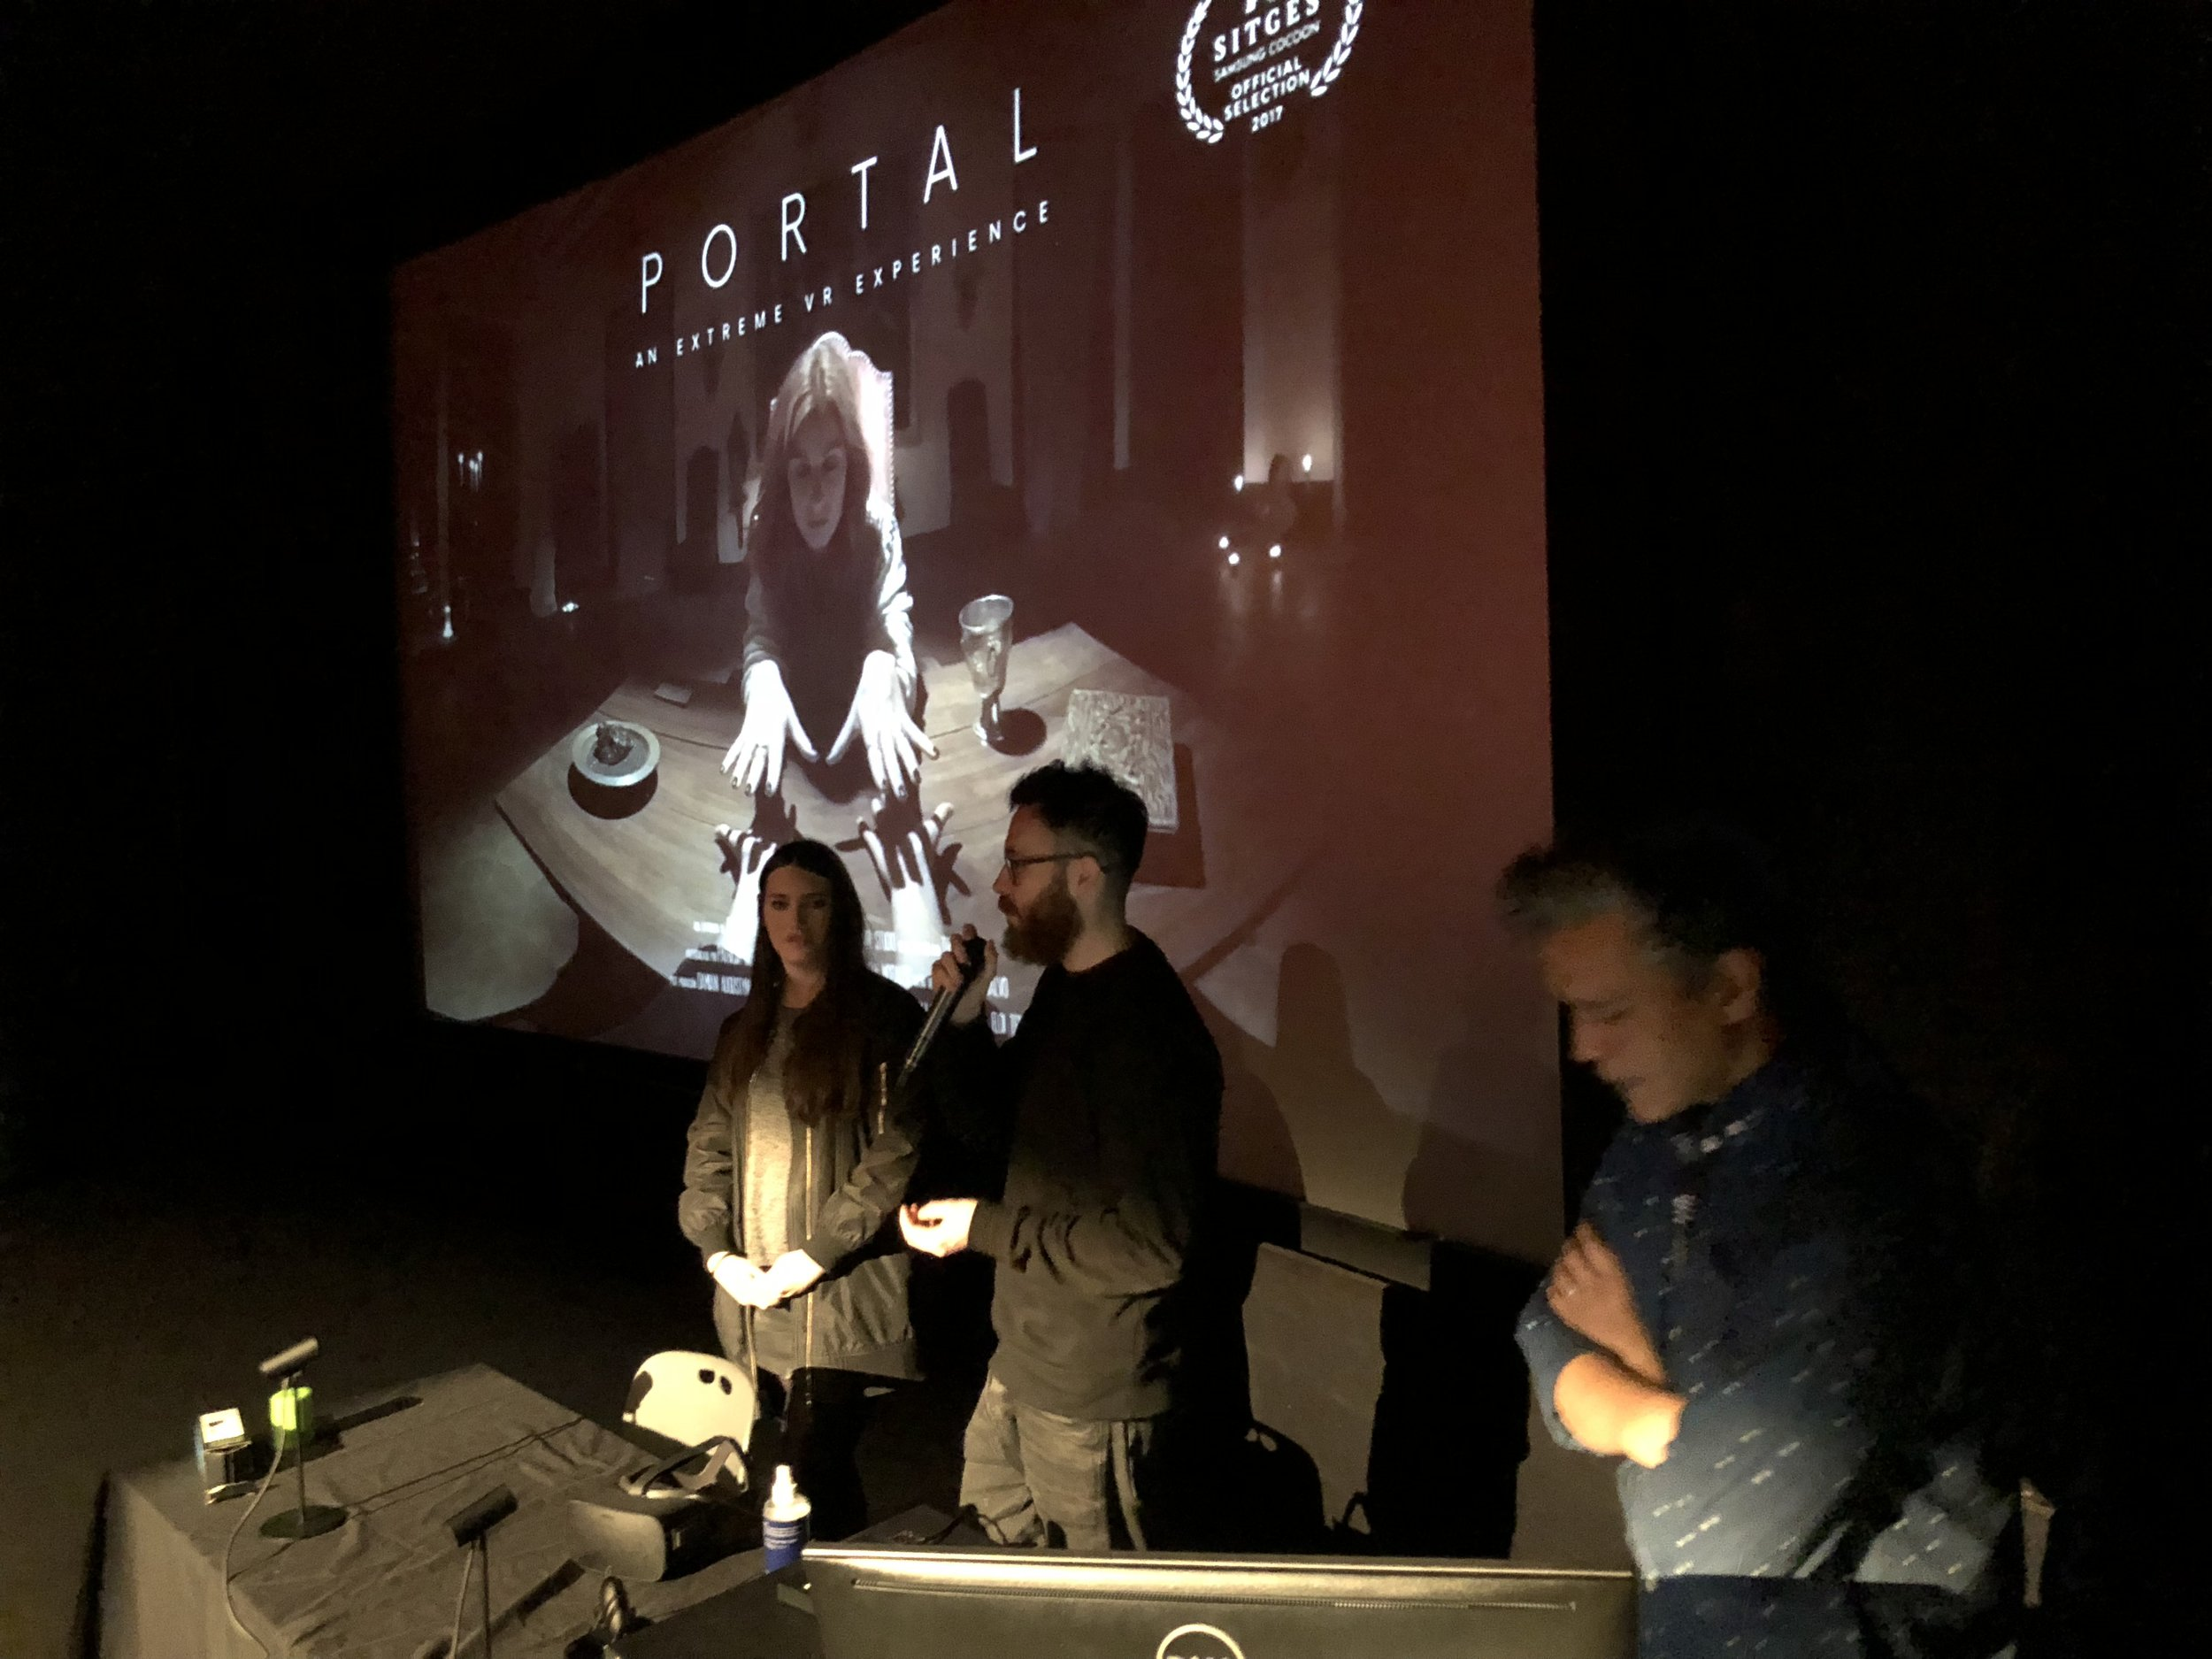 Q&A with Adrián Ruíz del Cerro and Patricia M. Val, Director and Producer of Portal: An Extreme VR Experience